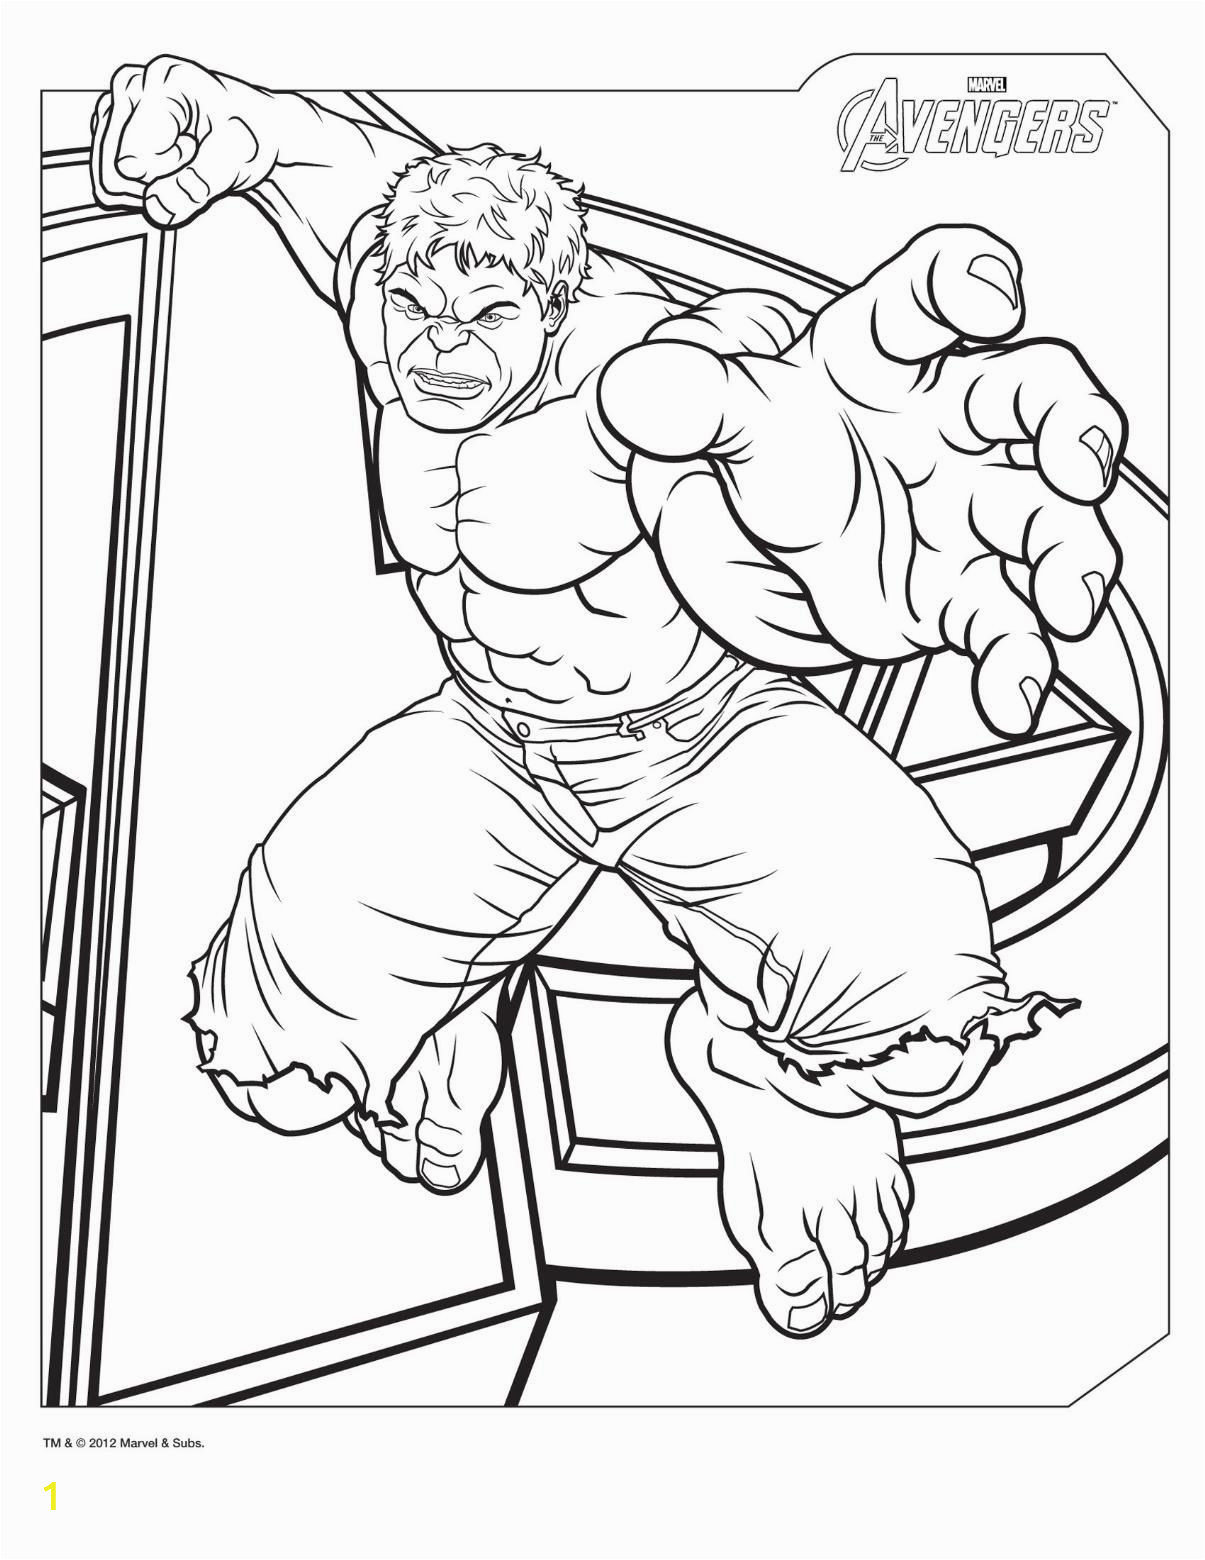 Hulk Coloring Pages to Print Free Free Printable Hulk Coloring Pages for Kids with Images